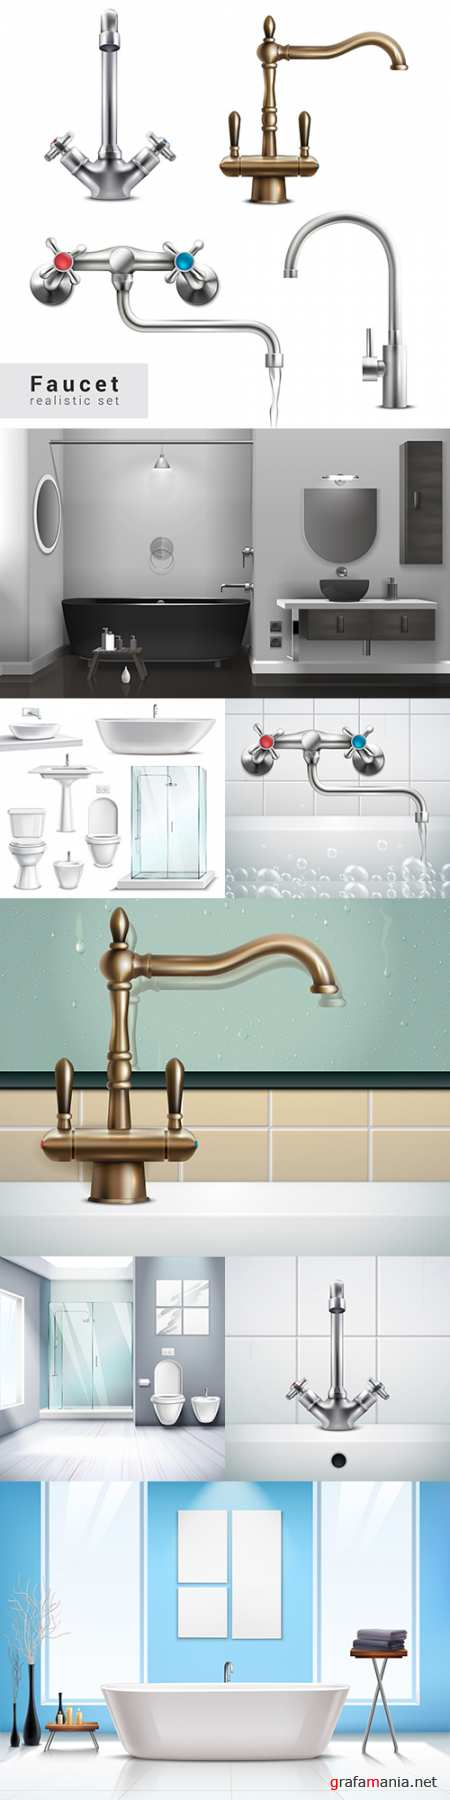 Bathroom interior and water mixers realistic illustrations